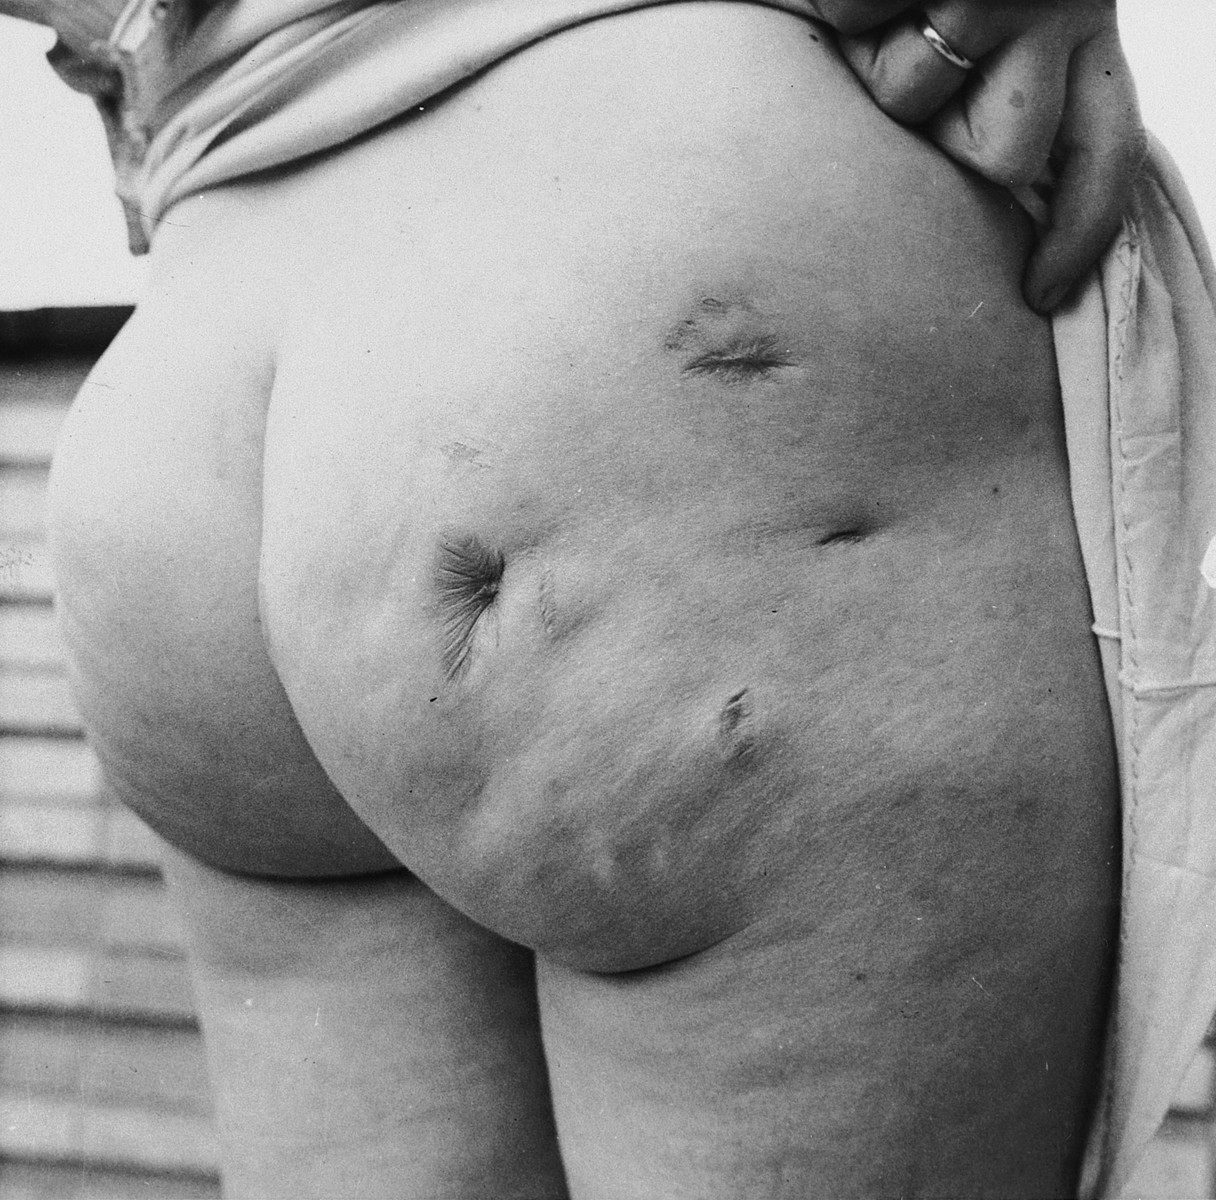 Madame Pacquet displays scars that she received as the result of torture in the Breendonck internment camp.